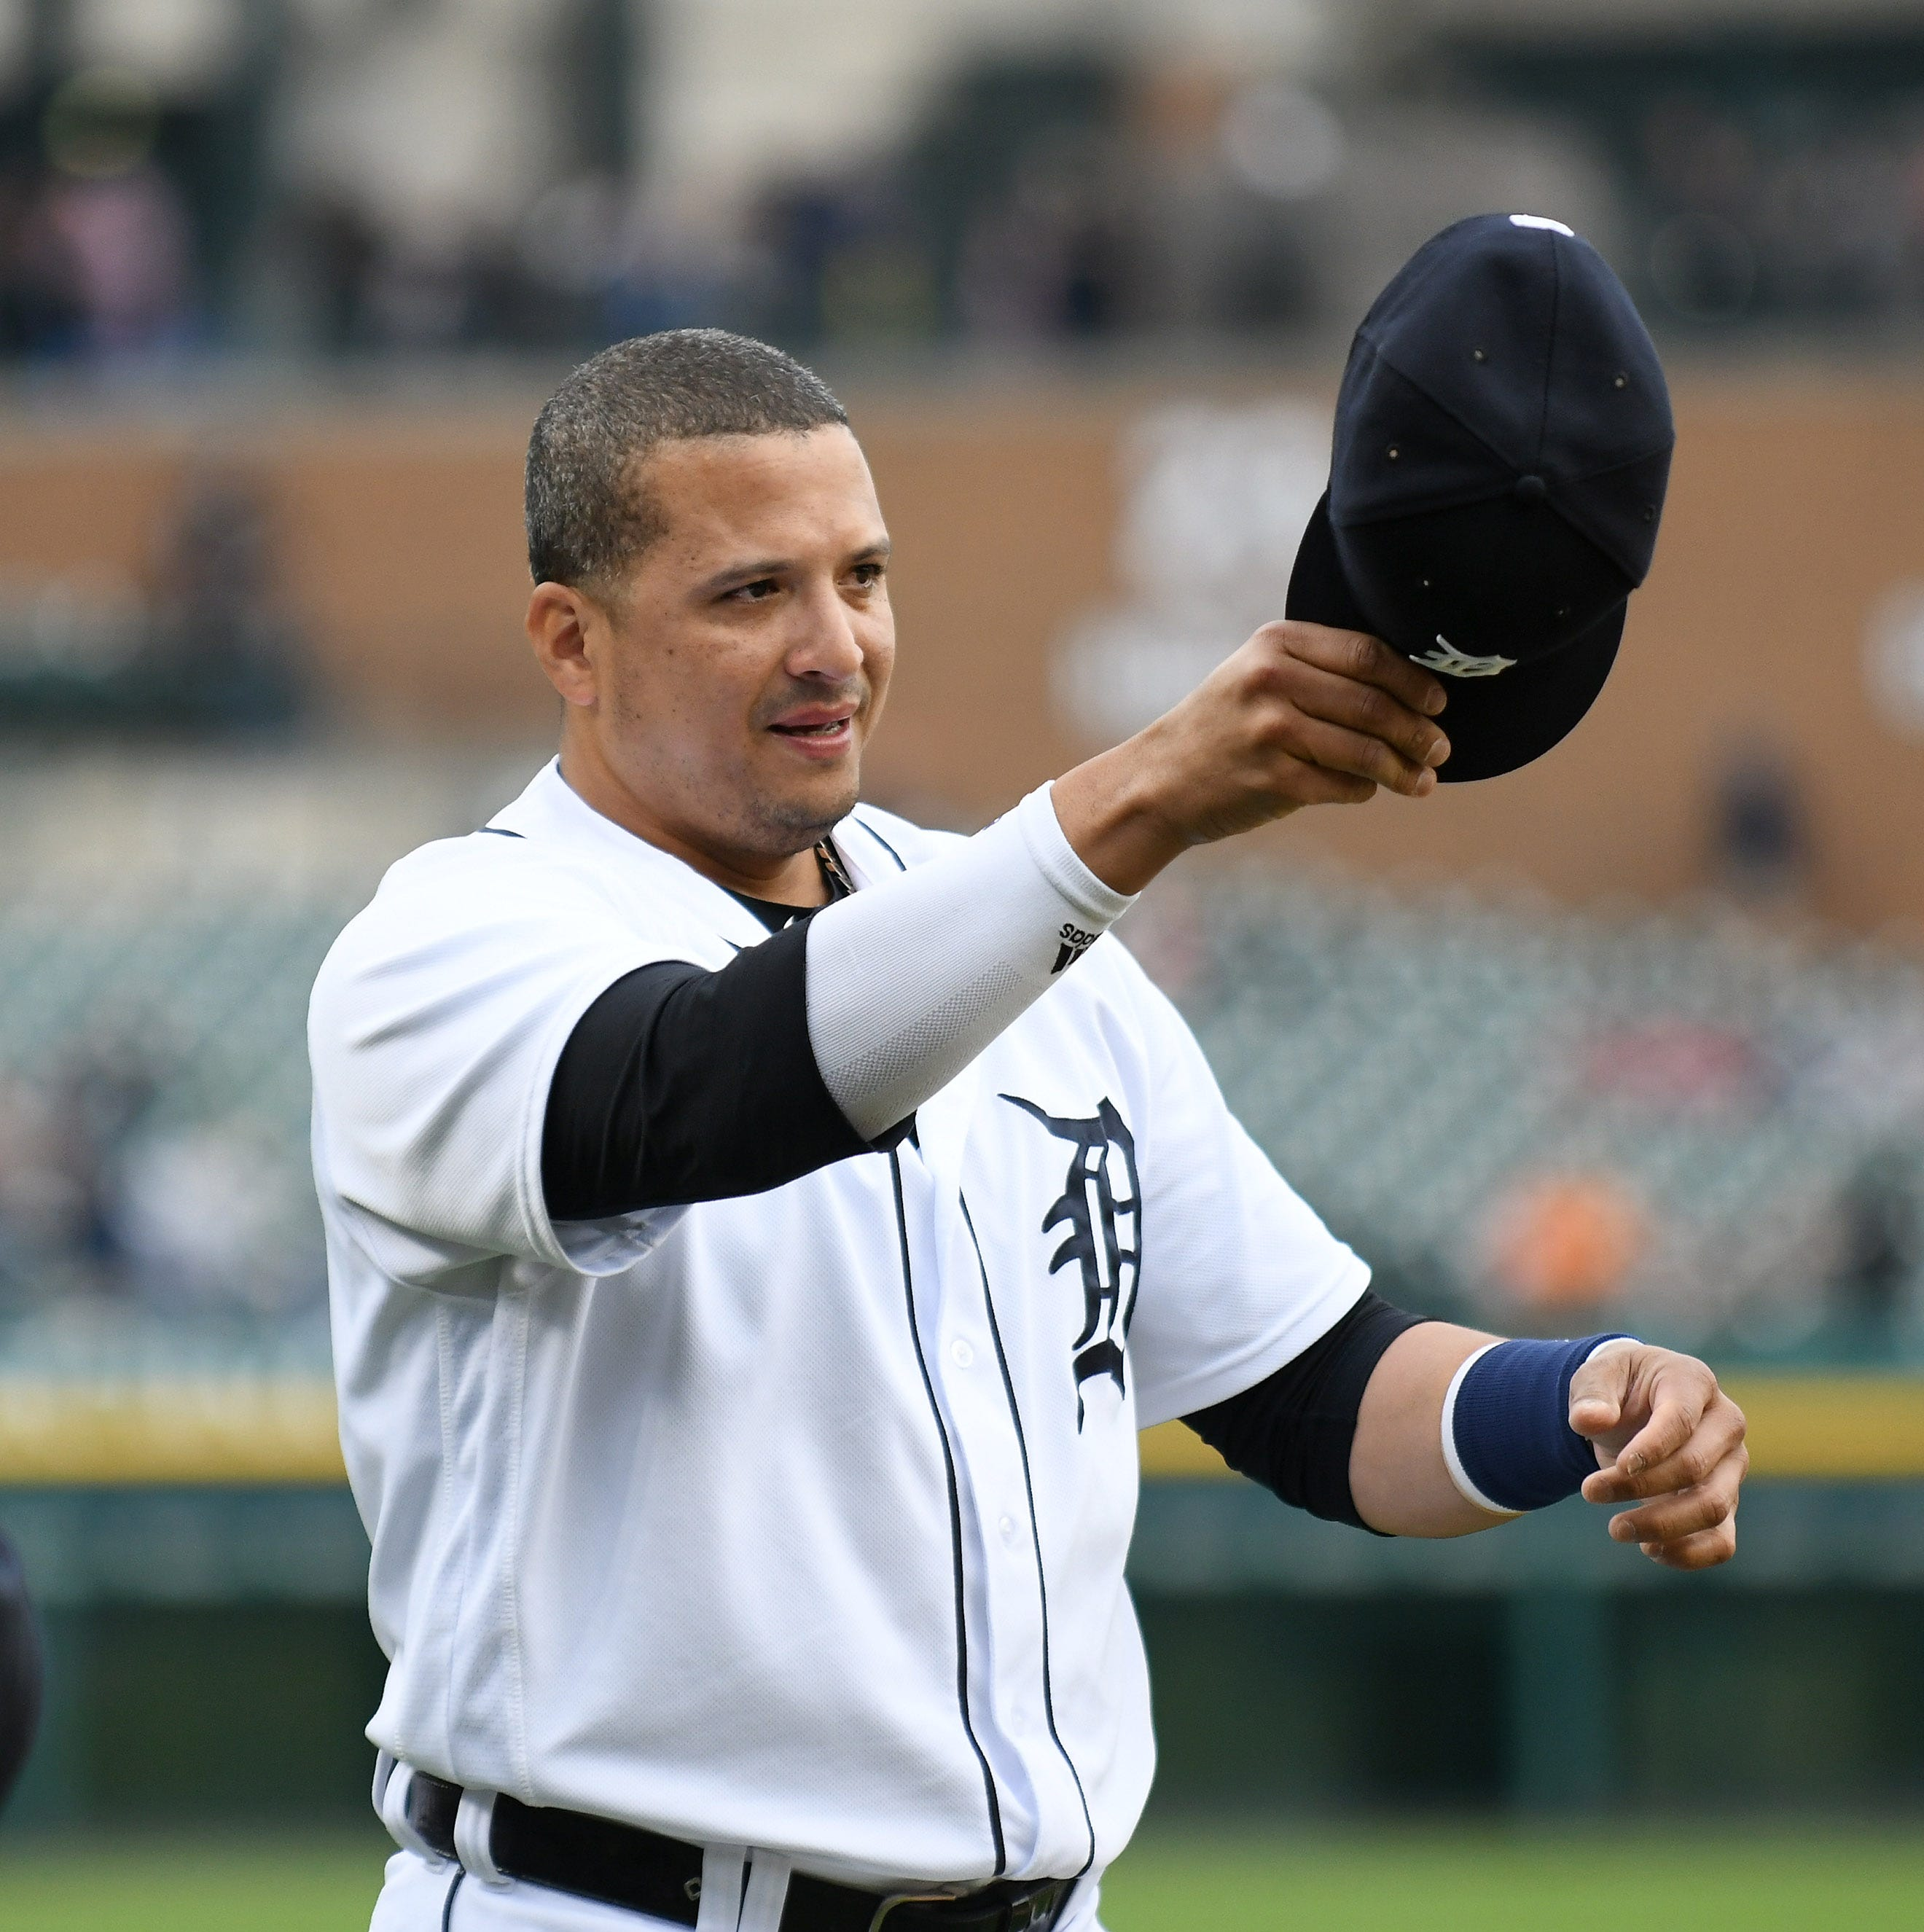 Emotional adieu: Tigers' Victor Martinez bows out in grand style